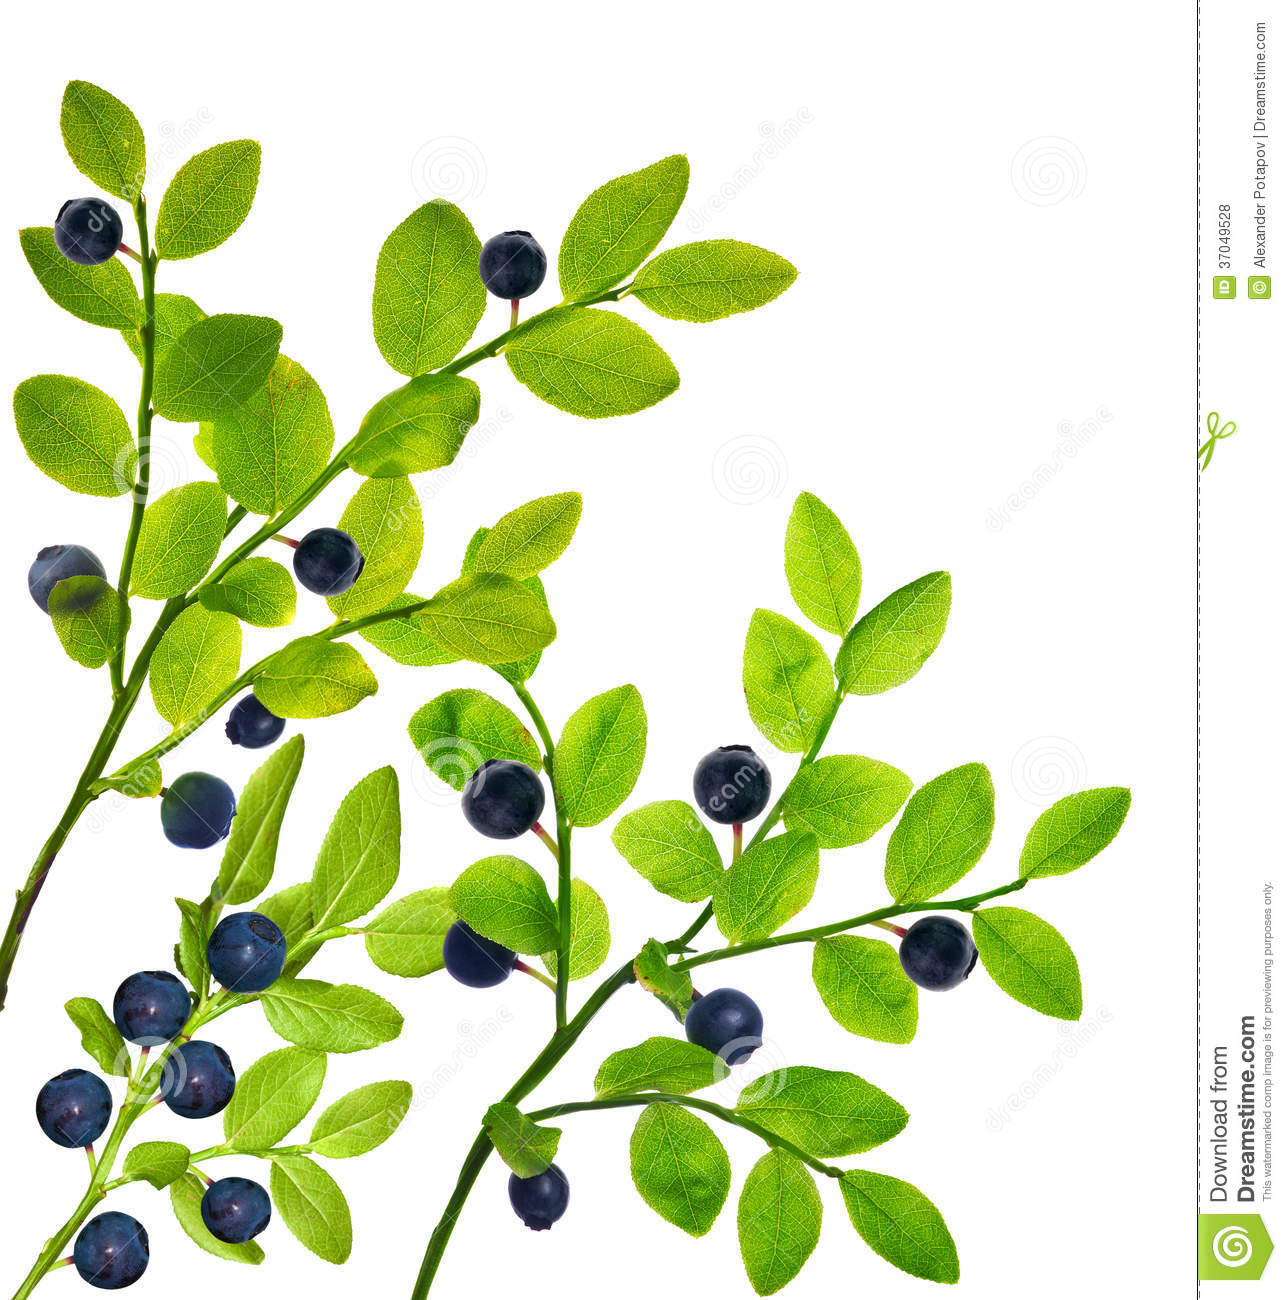 Blueberry Plants With Berries On White Royalty Free Stock Photos.